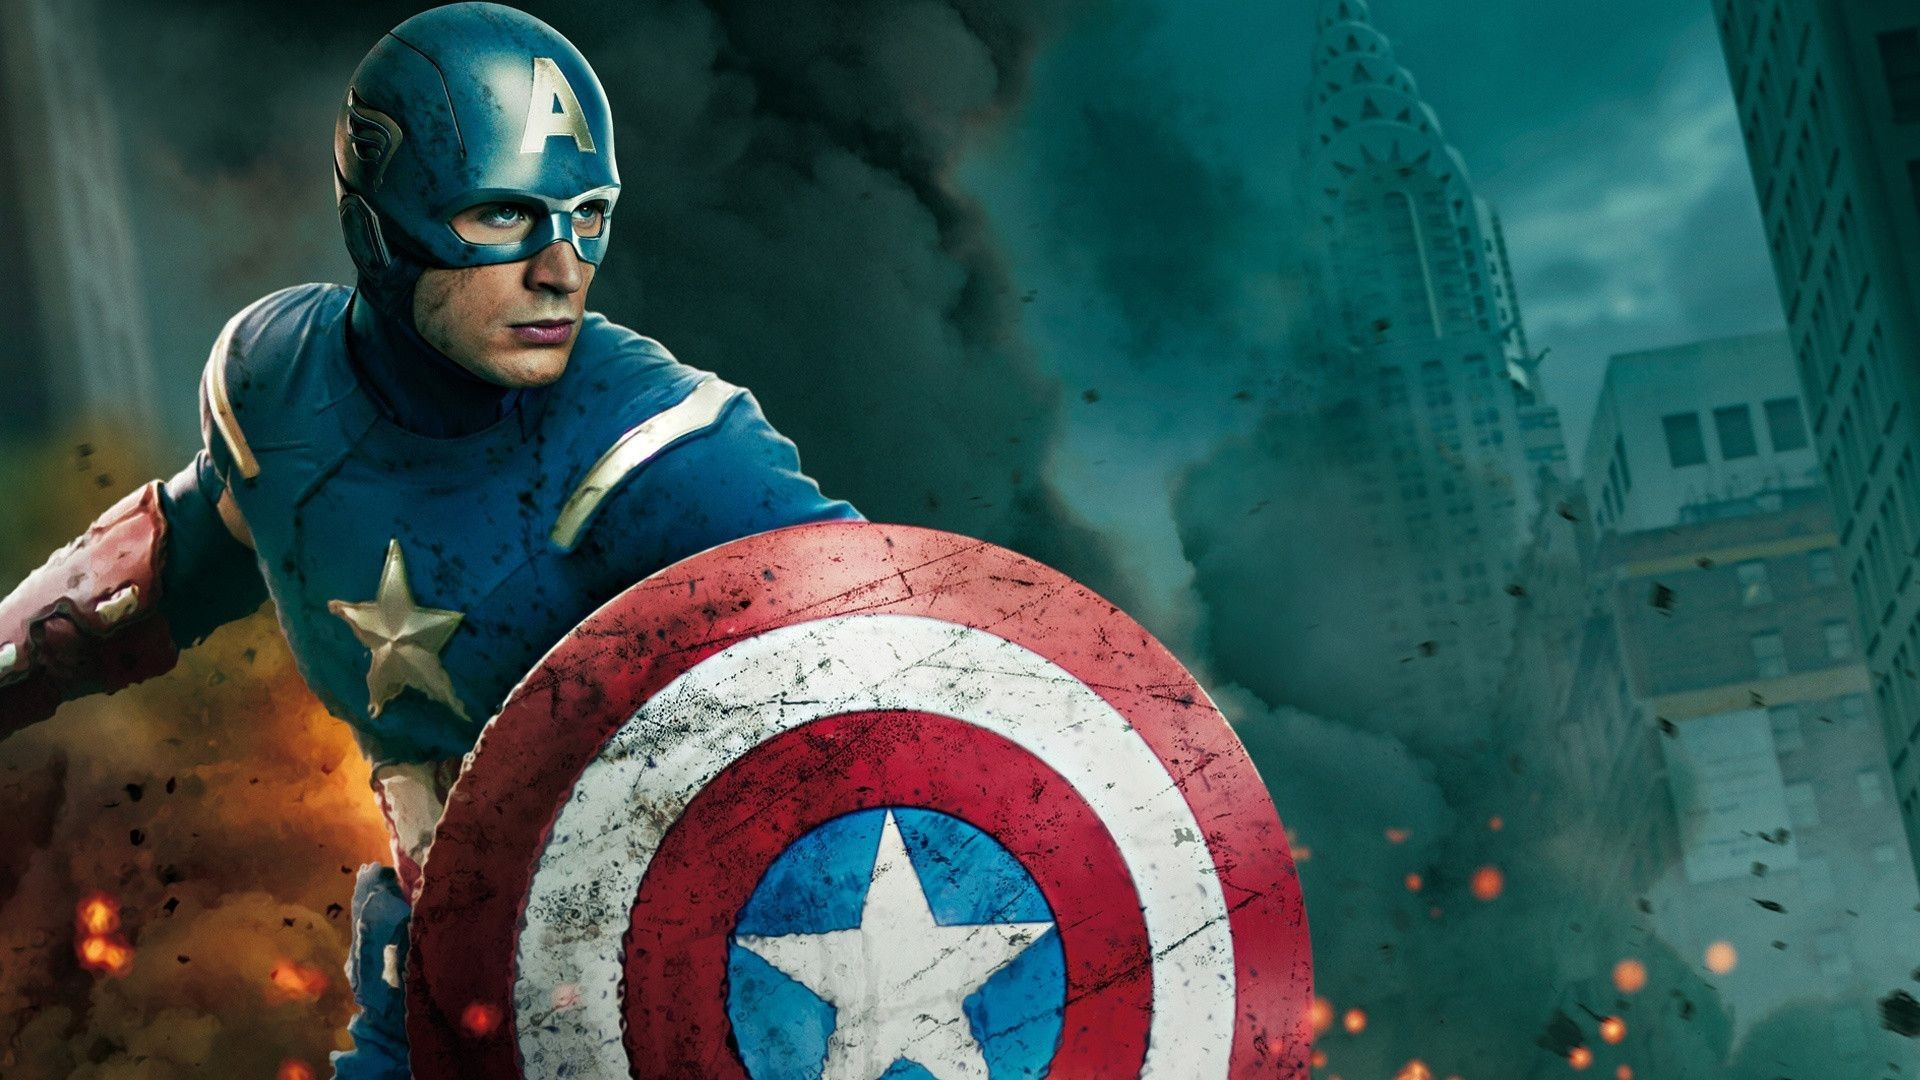 The Avengers Wallpaper HD Avengers HD Live Images HD Wallpapers